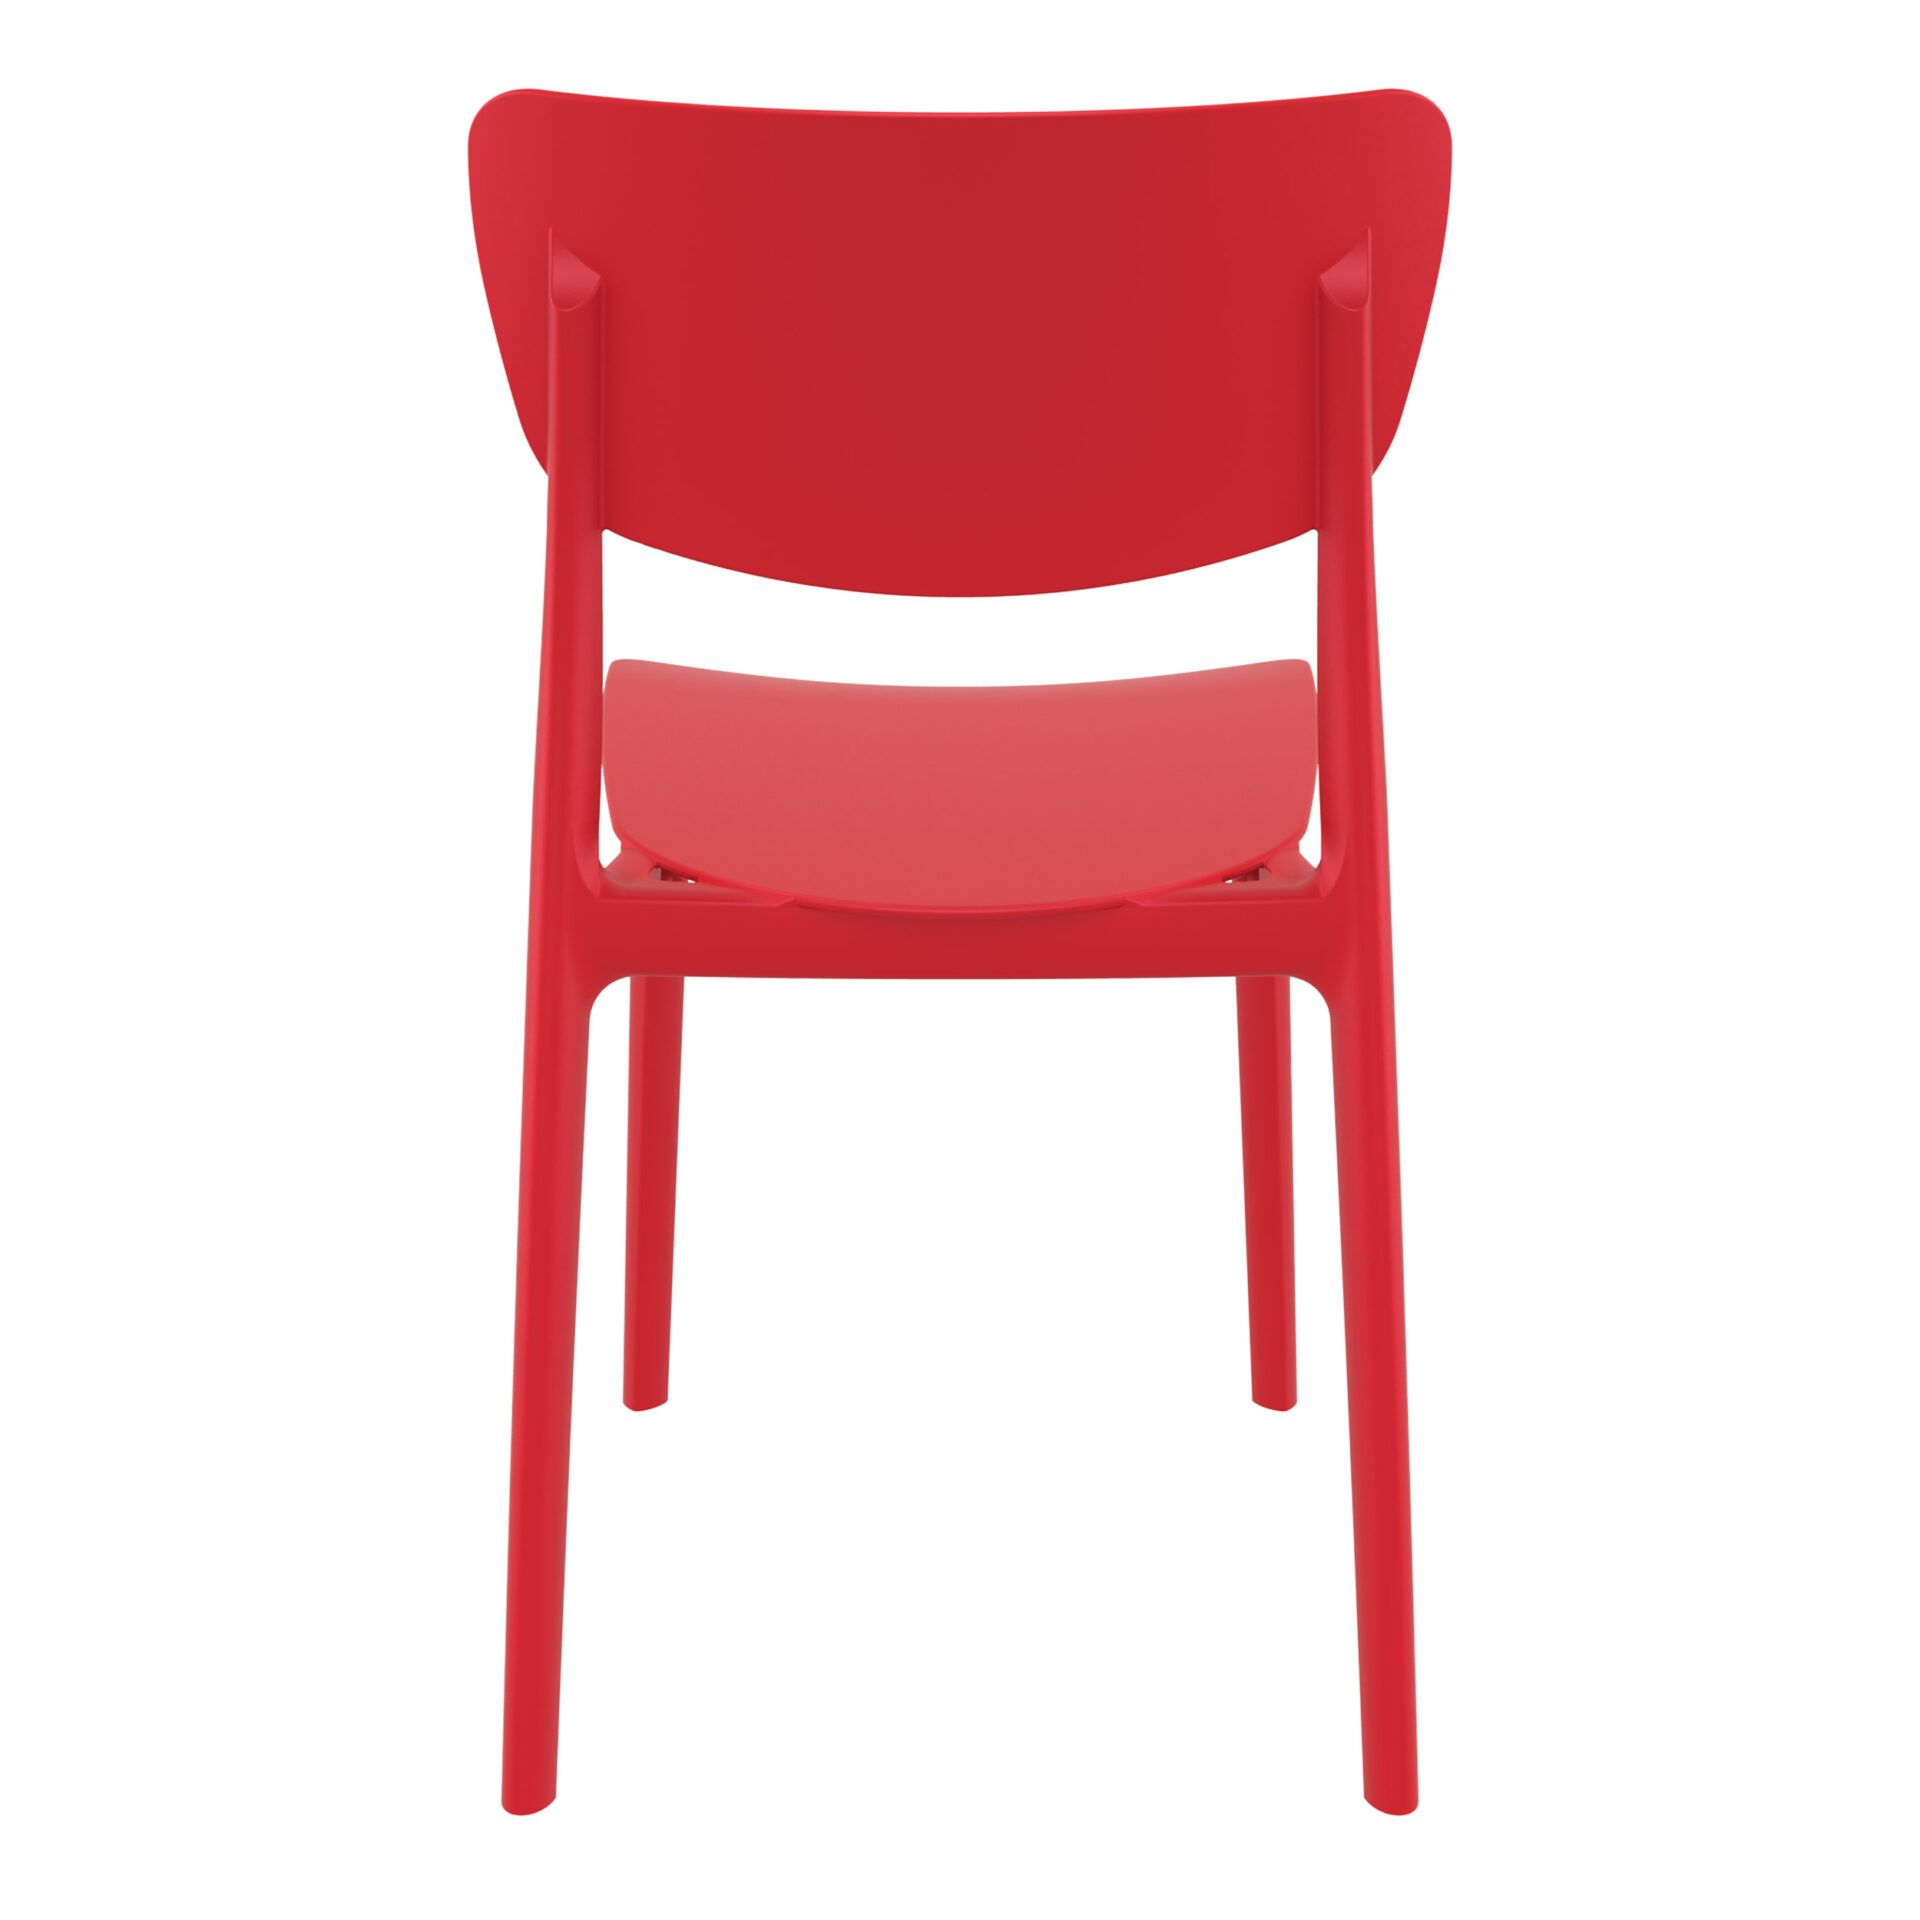 polypropylene outdoor dining monna chair red back